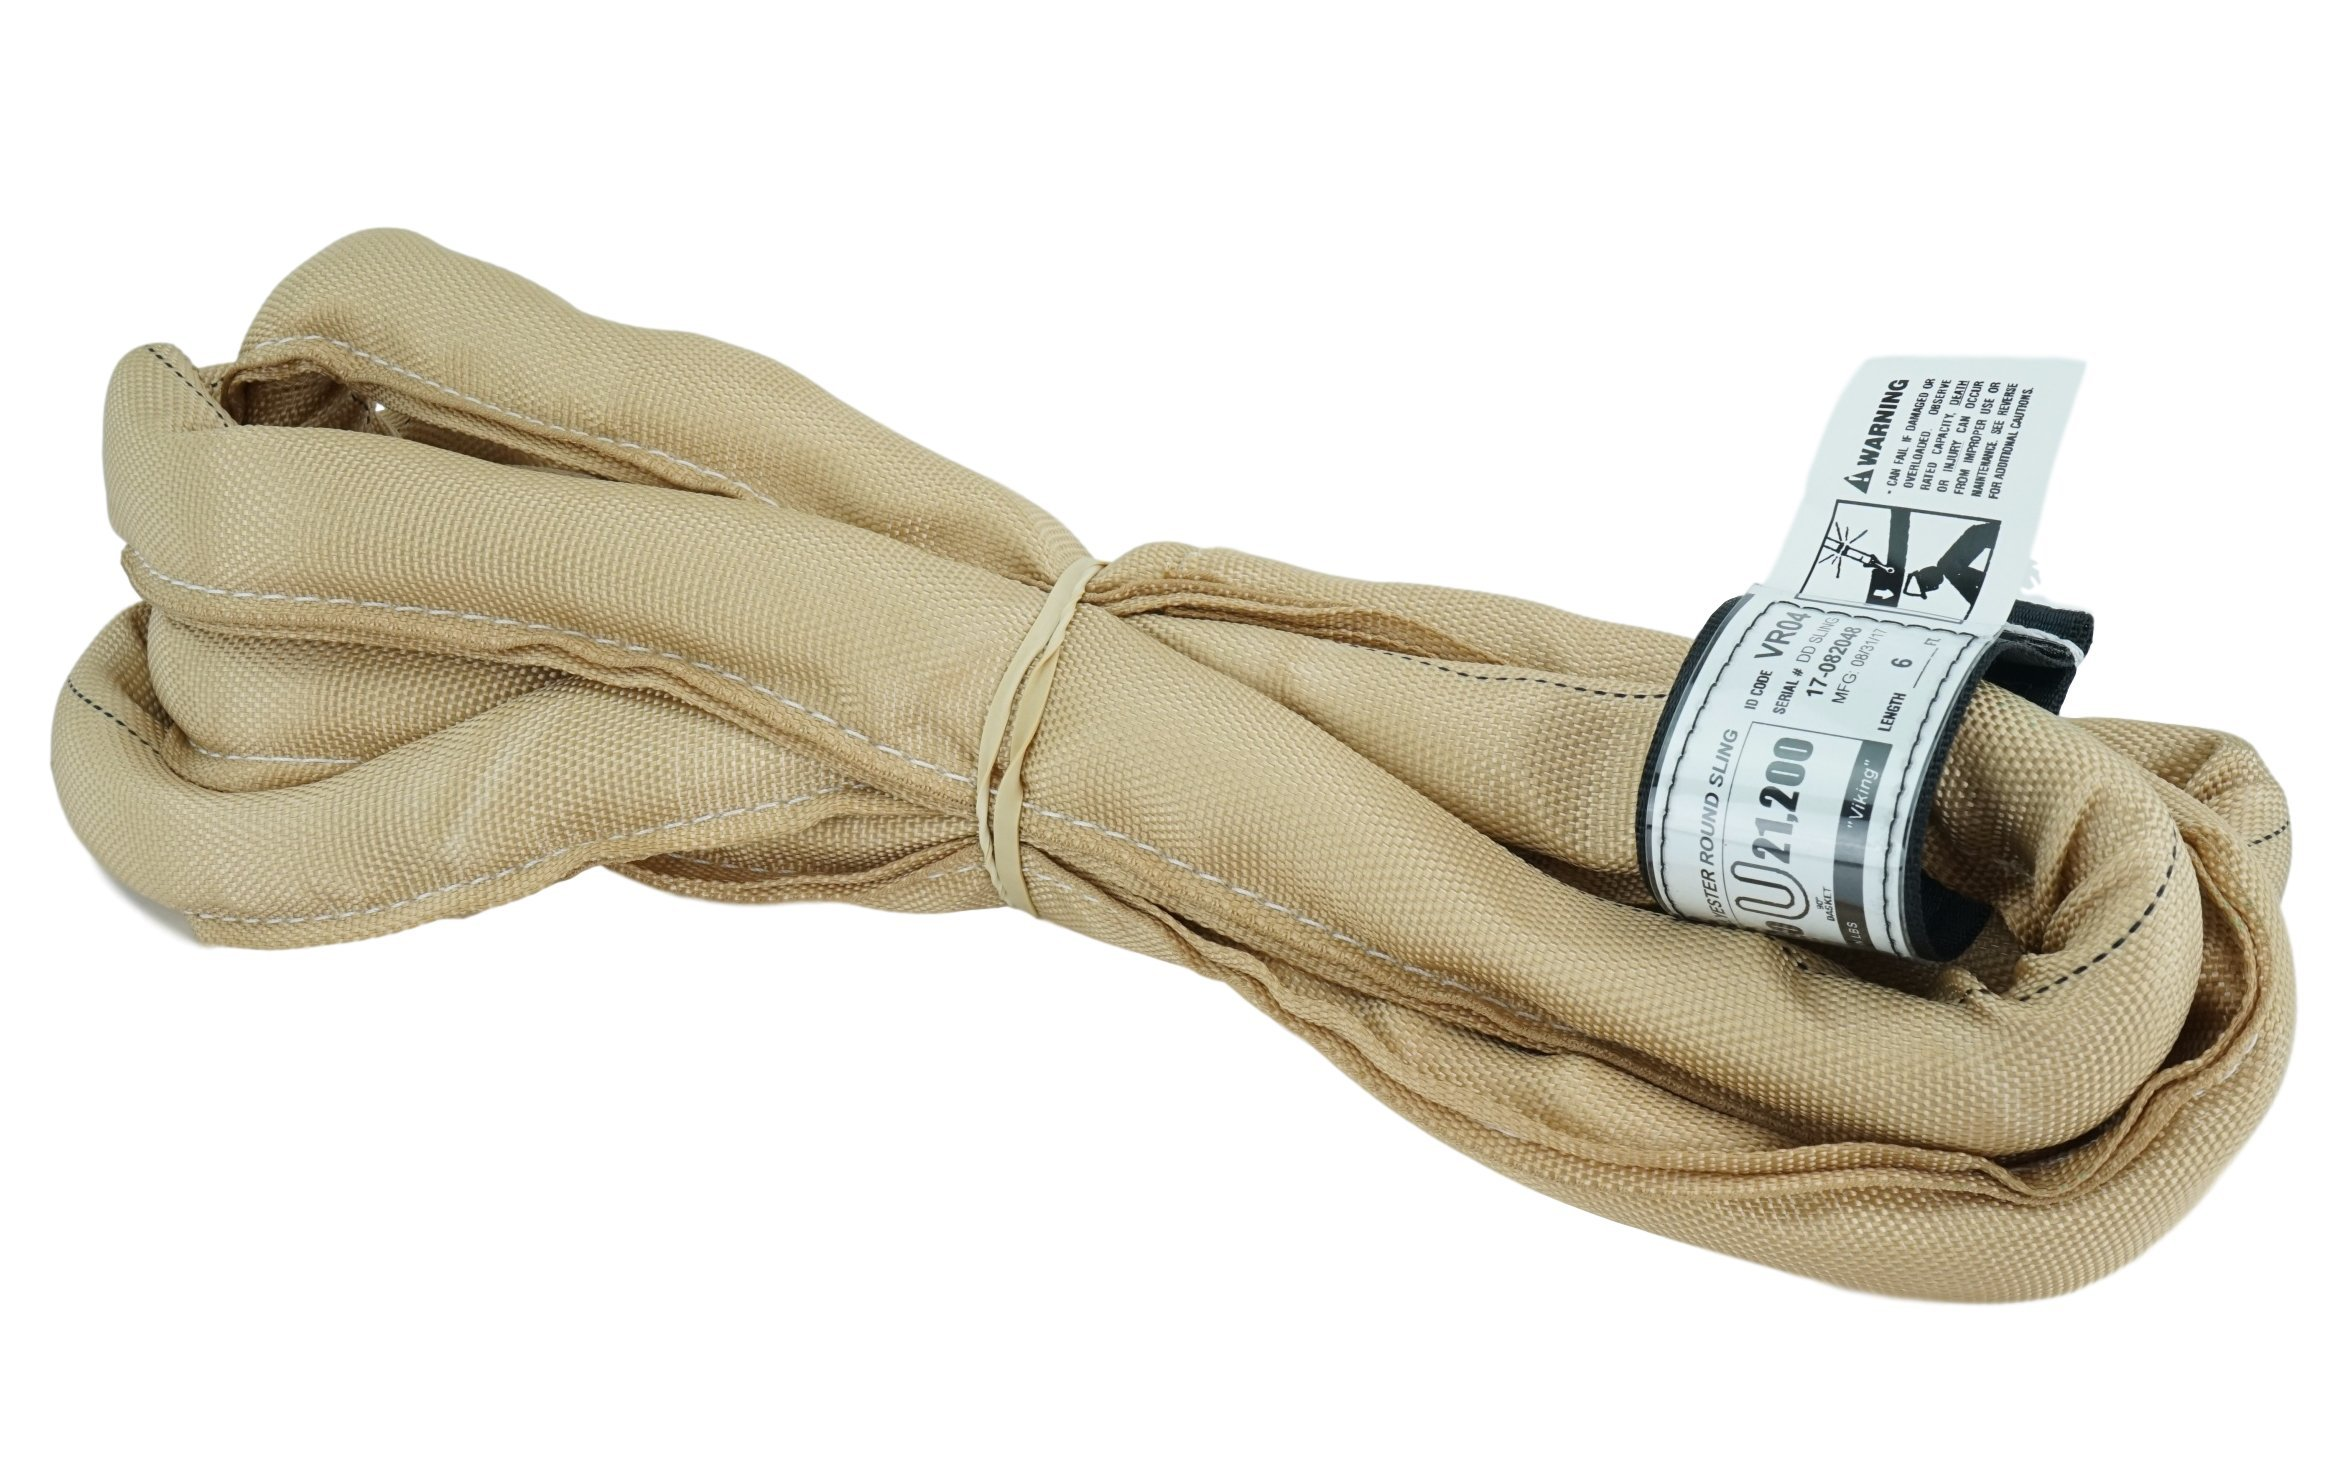 USA Made VR4 X 6' Tan Slings 4'-30' Lengths In Listing, DOUBLE PLY COVER Endless Round Poly Lifting Slings, 10,600 lbs Vertical, 8,500 lbs Choker, 21,200 lbs Basket (USA Poly) (6 FT)